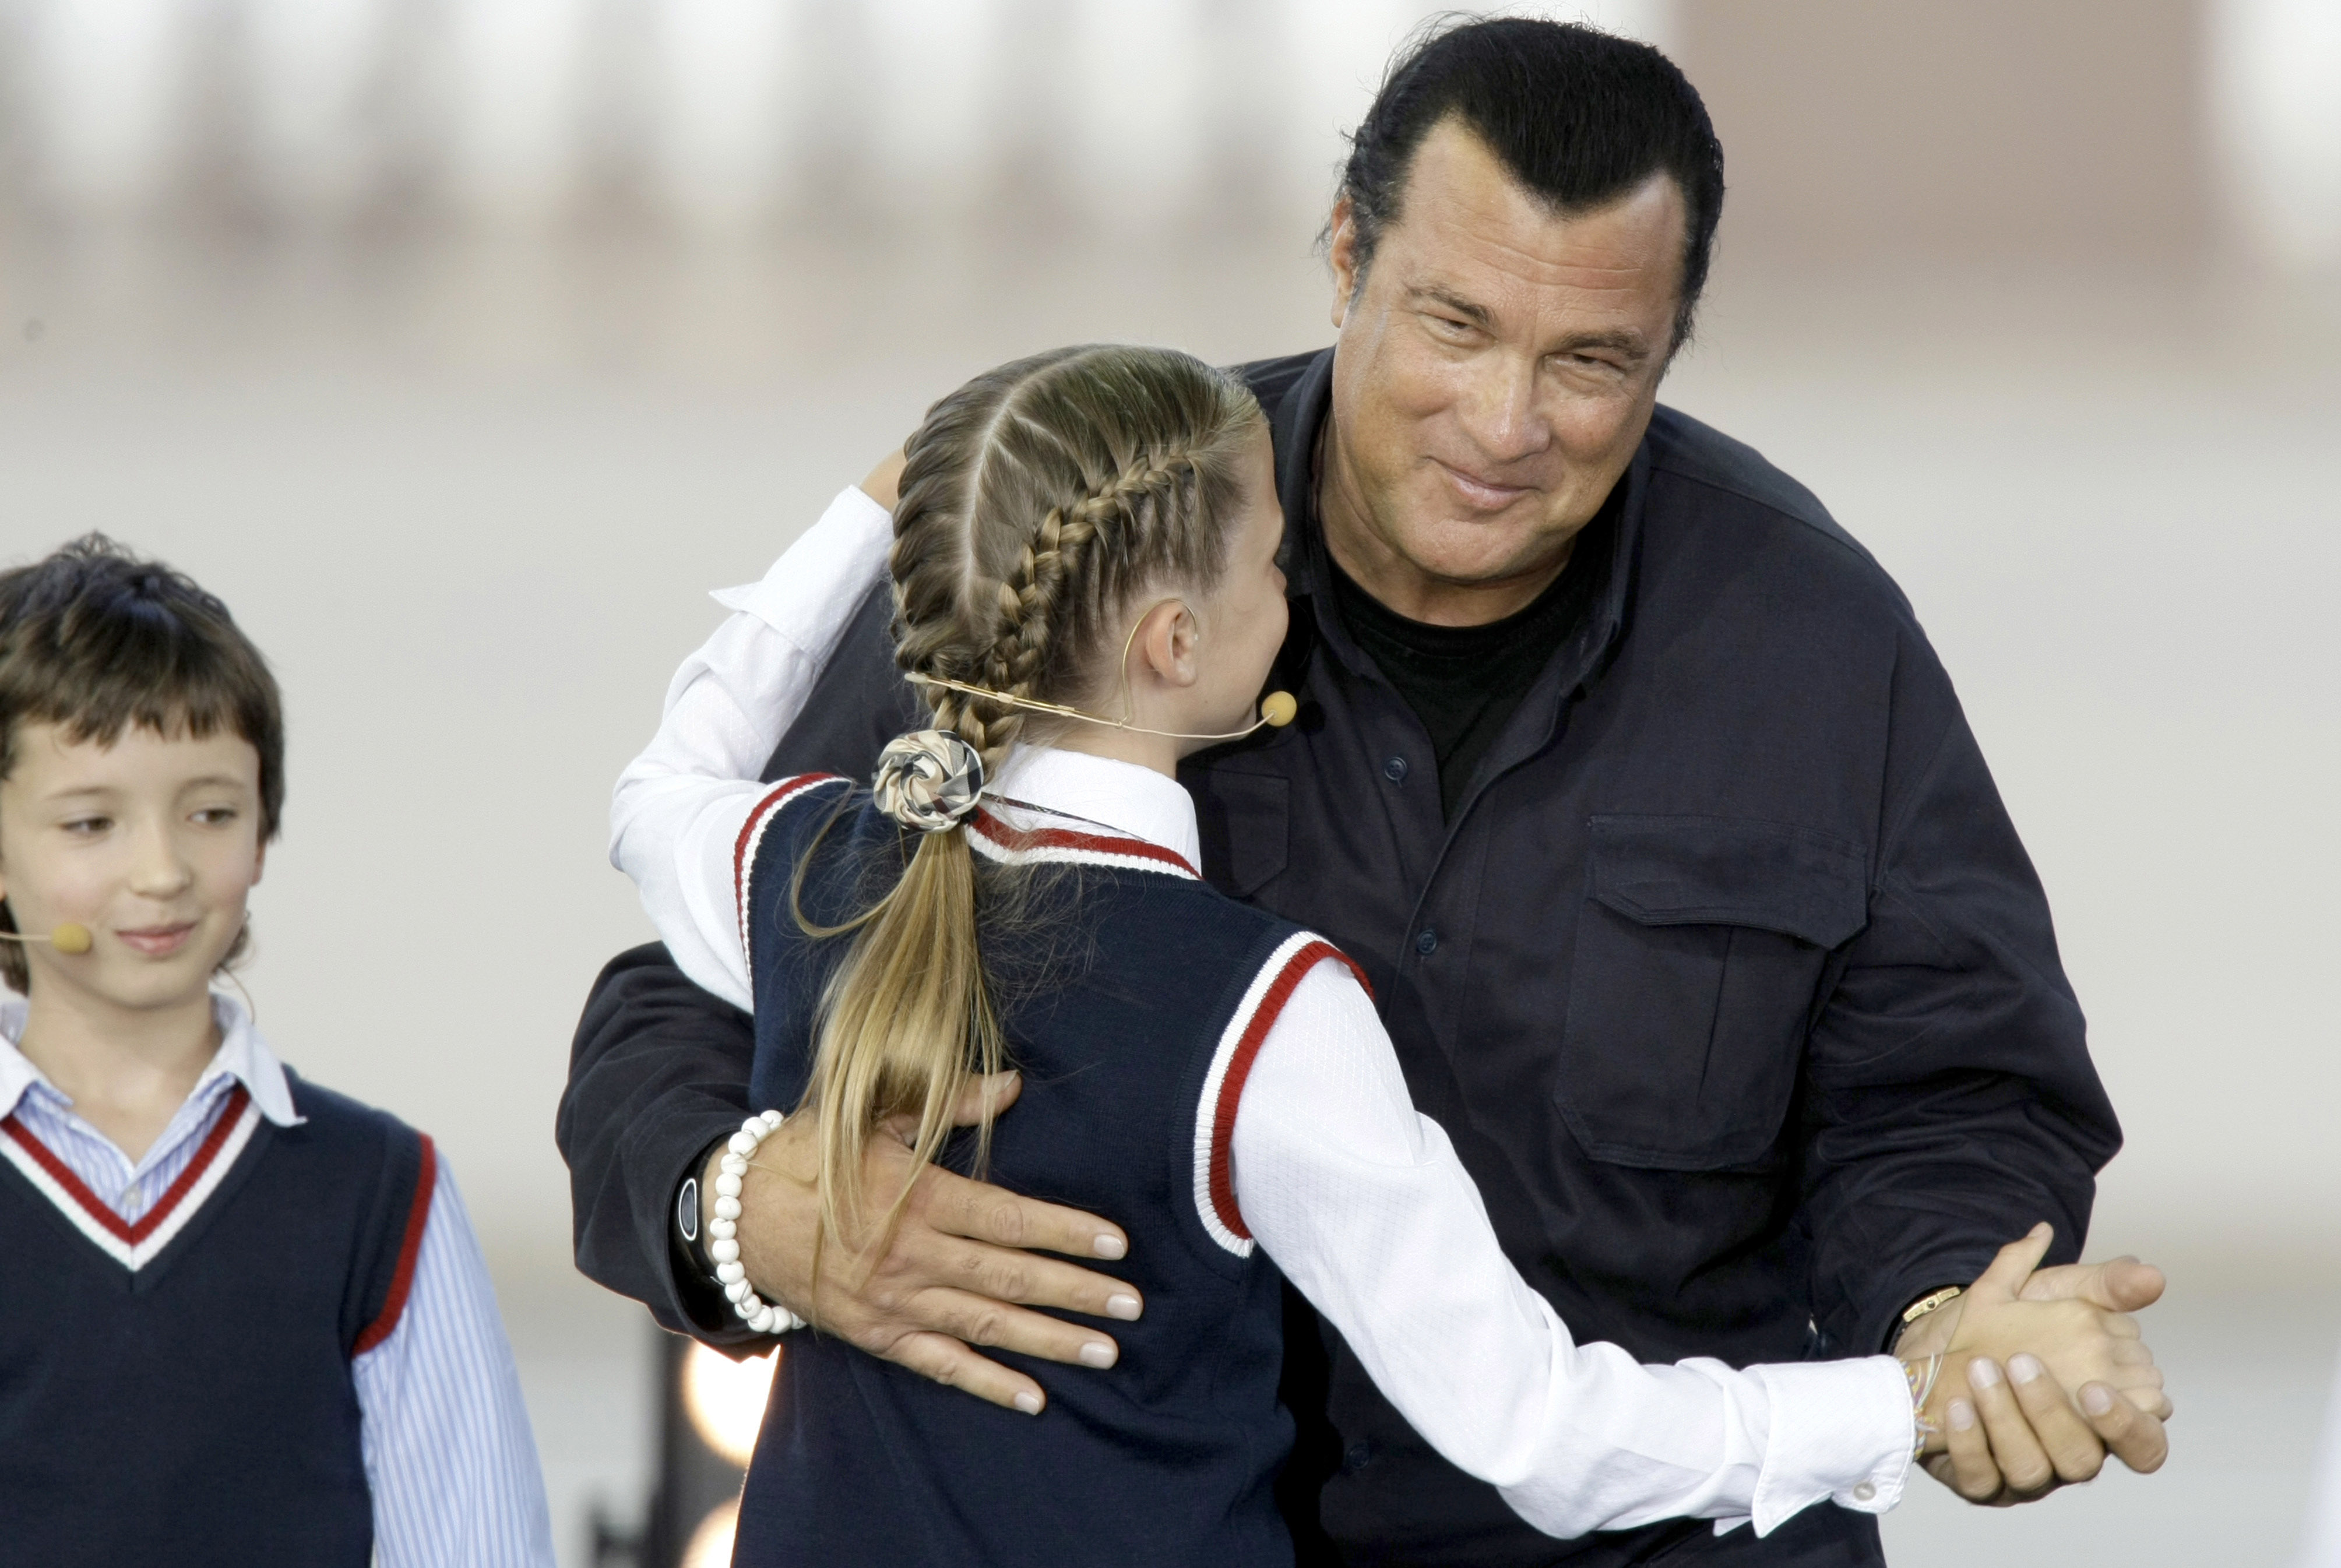 Steven Seagal, a new Russian citizen, dances with a young girl in Moscow